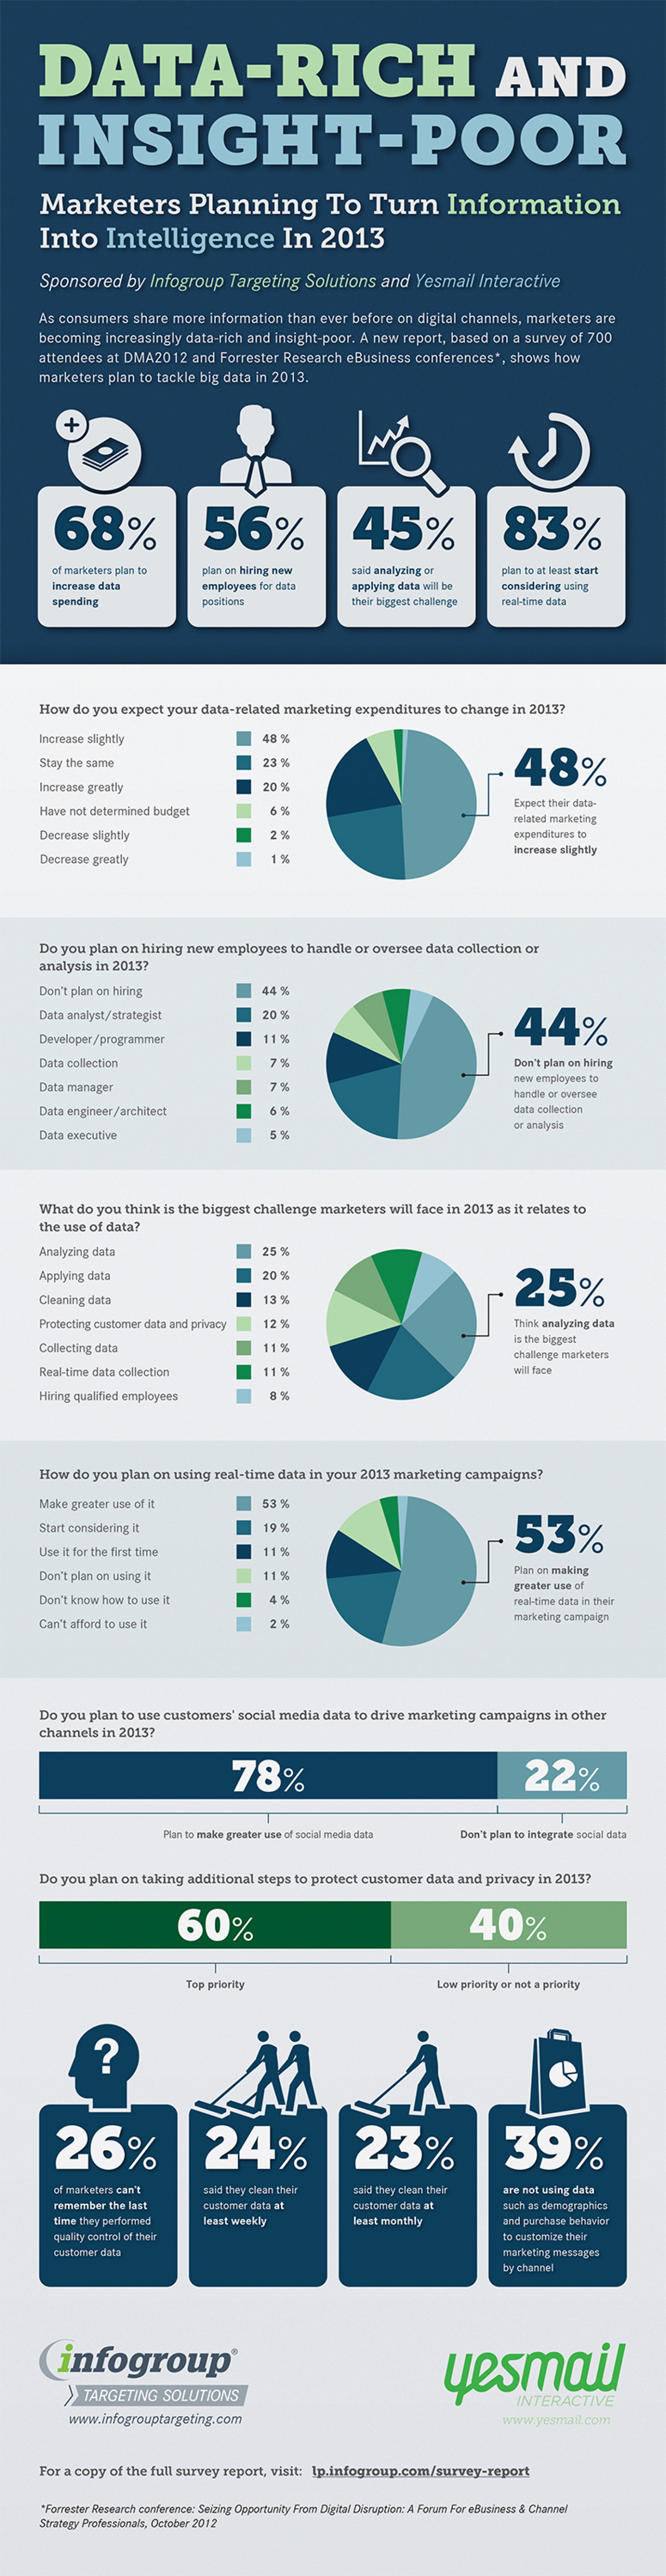 Data-Rich and Insight-Poor: Marketers Planning to Turn Information Into Intelligence in 2013 Infographic